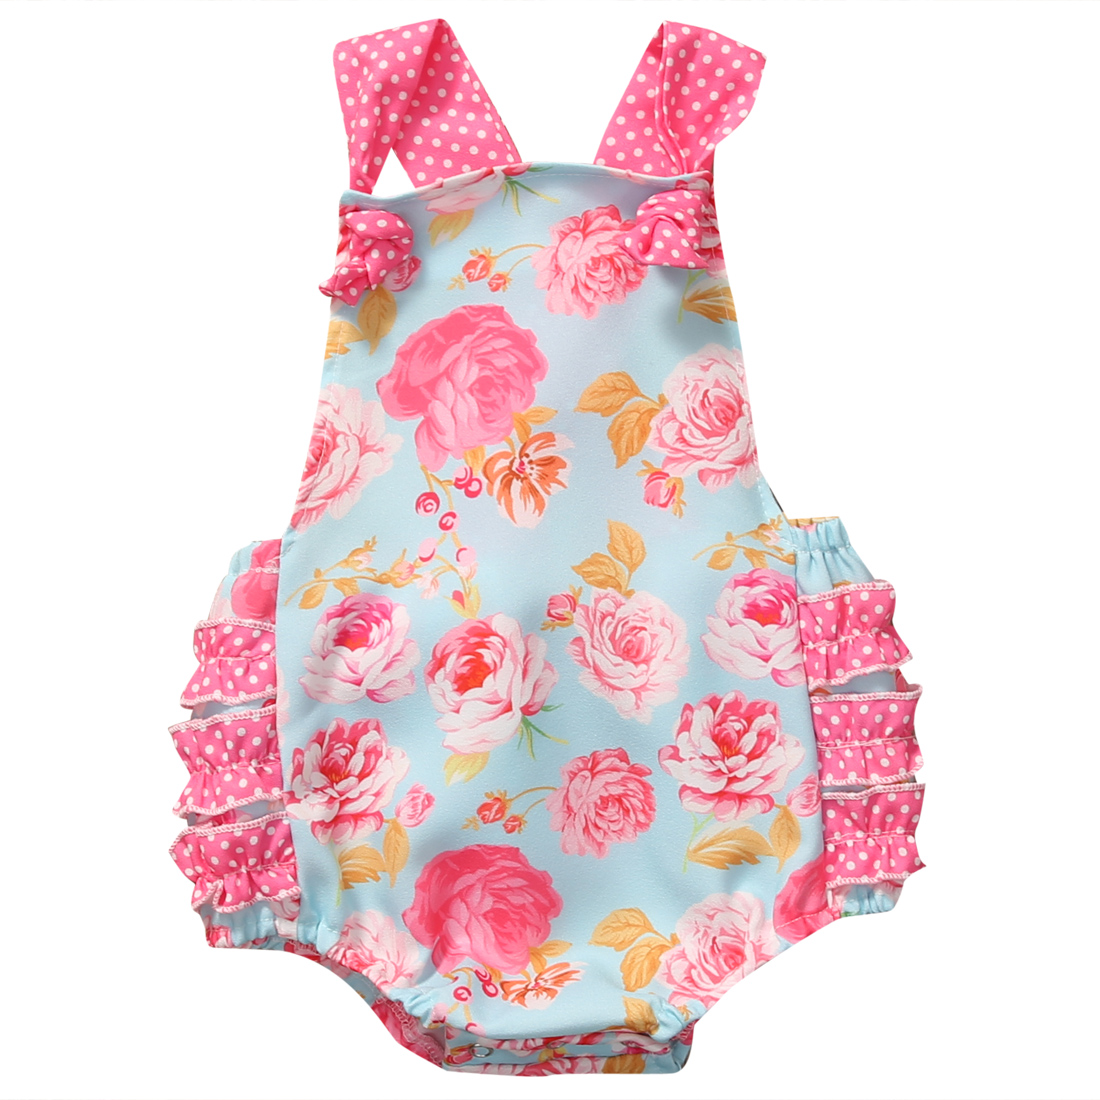 2017 Floral Baby Romper Newborn Infant Baby Girls Clothes Summer Sleeveless Ruffles Jumpsuit One Pieces Outfits Sunsuit 0-18M cute newborn baby girls clothes floral infant bebes romper cotton jumpsuit one pieces outfit sunsuit 0 18m